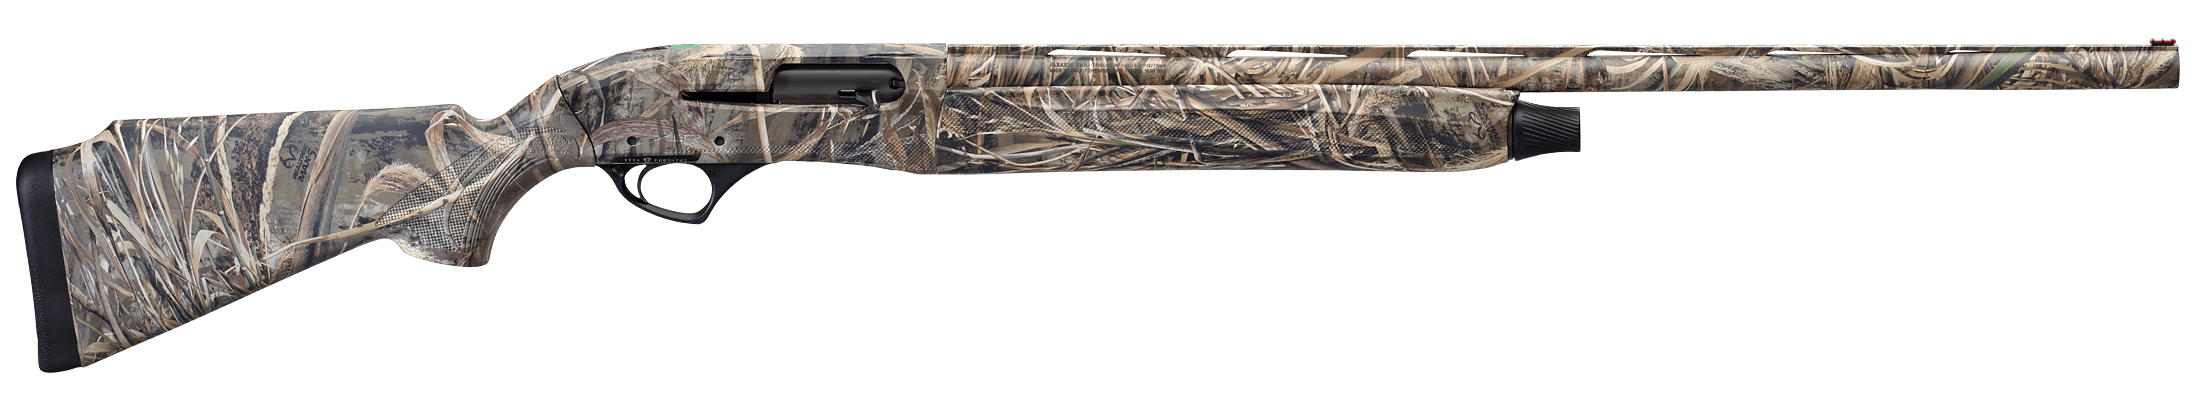 Syren XLR5 Waterfowler  Starting at $1,895 MSRP (Competitive Pricing Available)